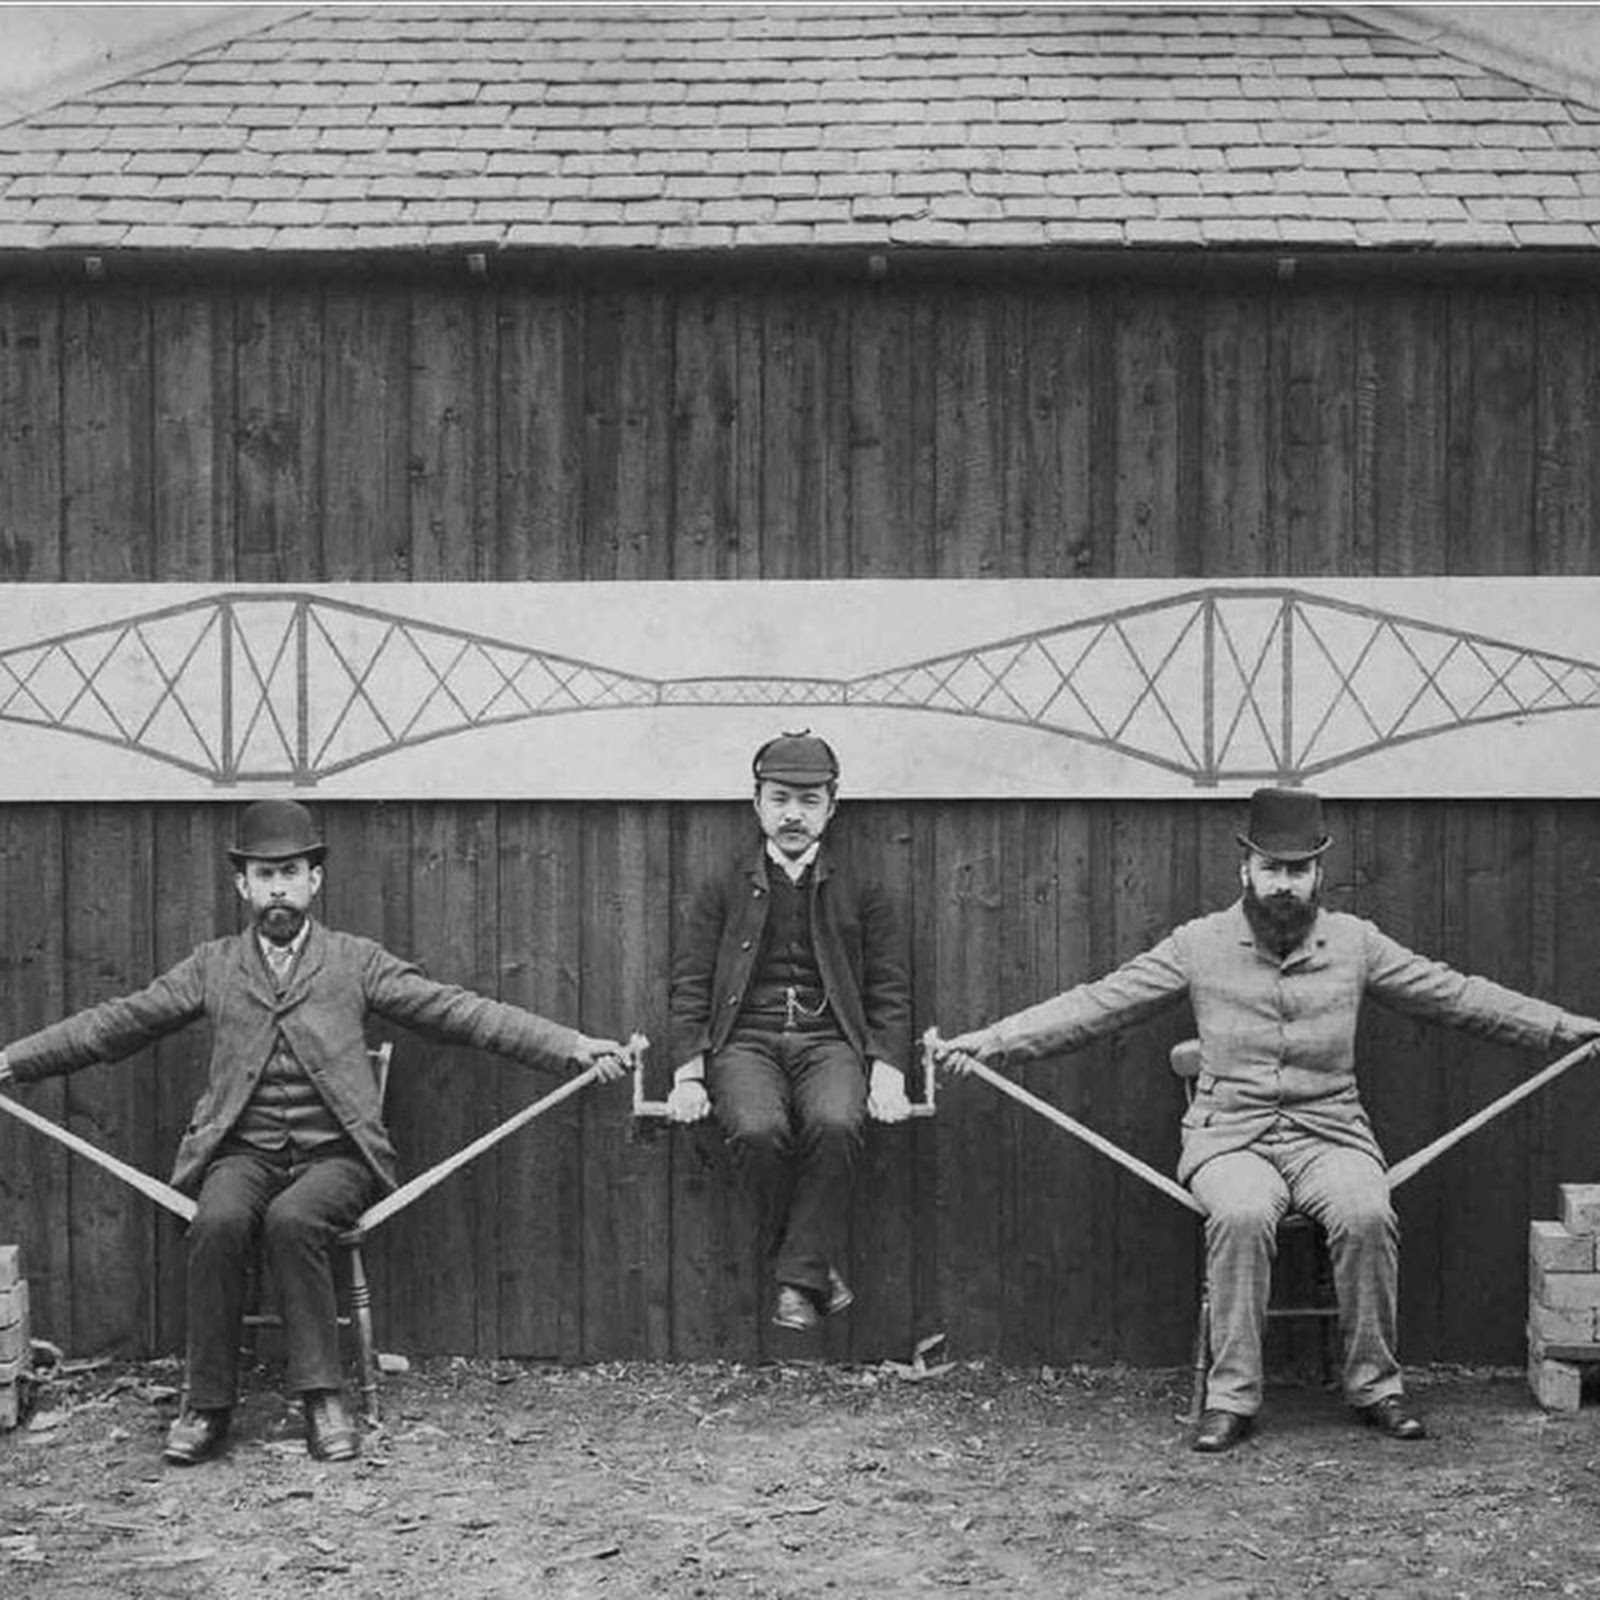 Demonstration of a Cantilever Bridge